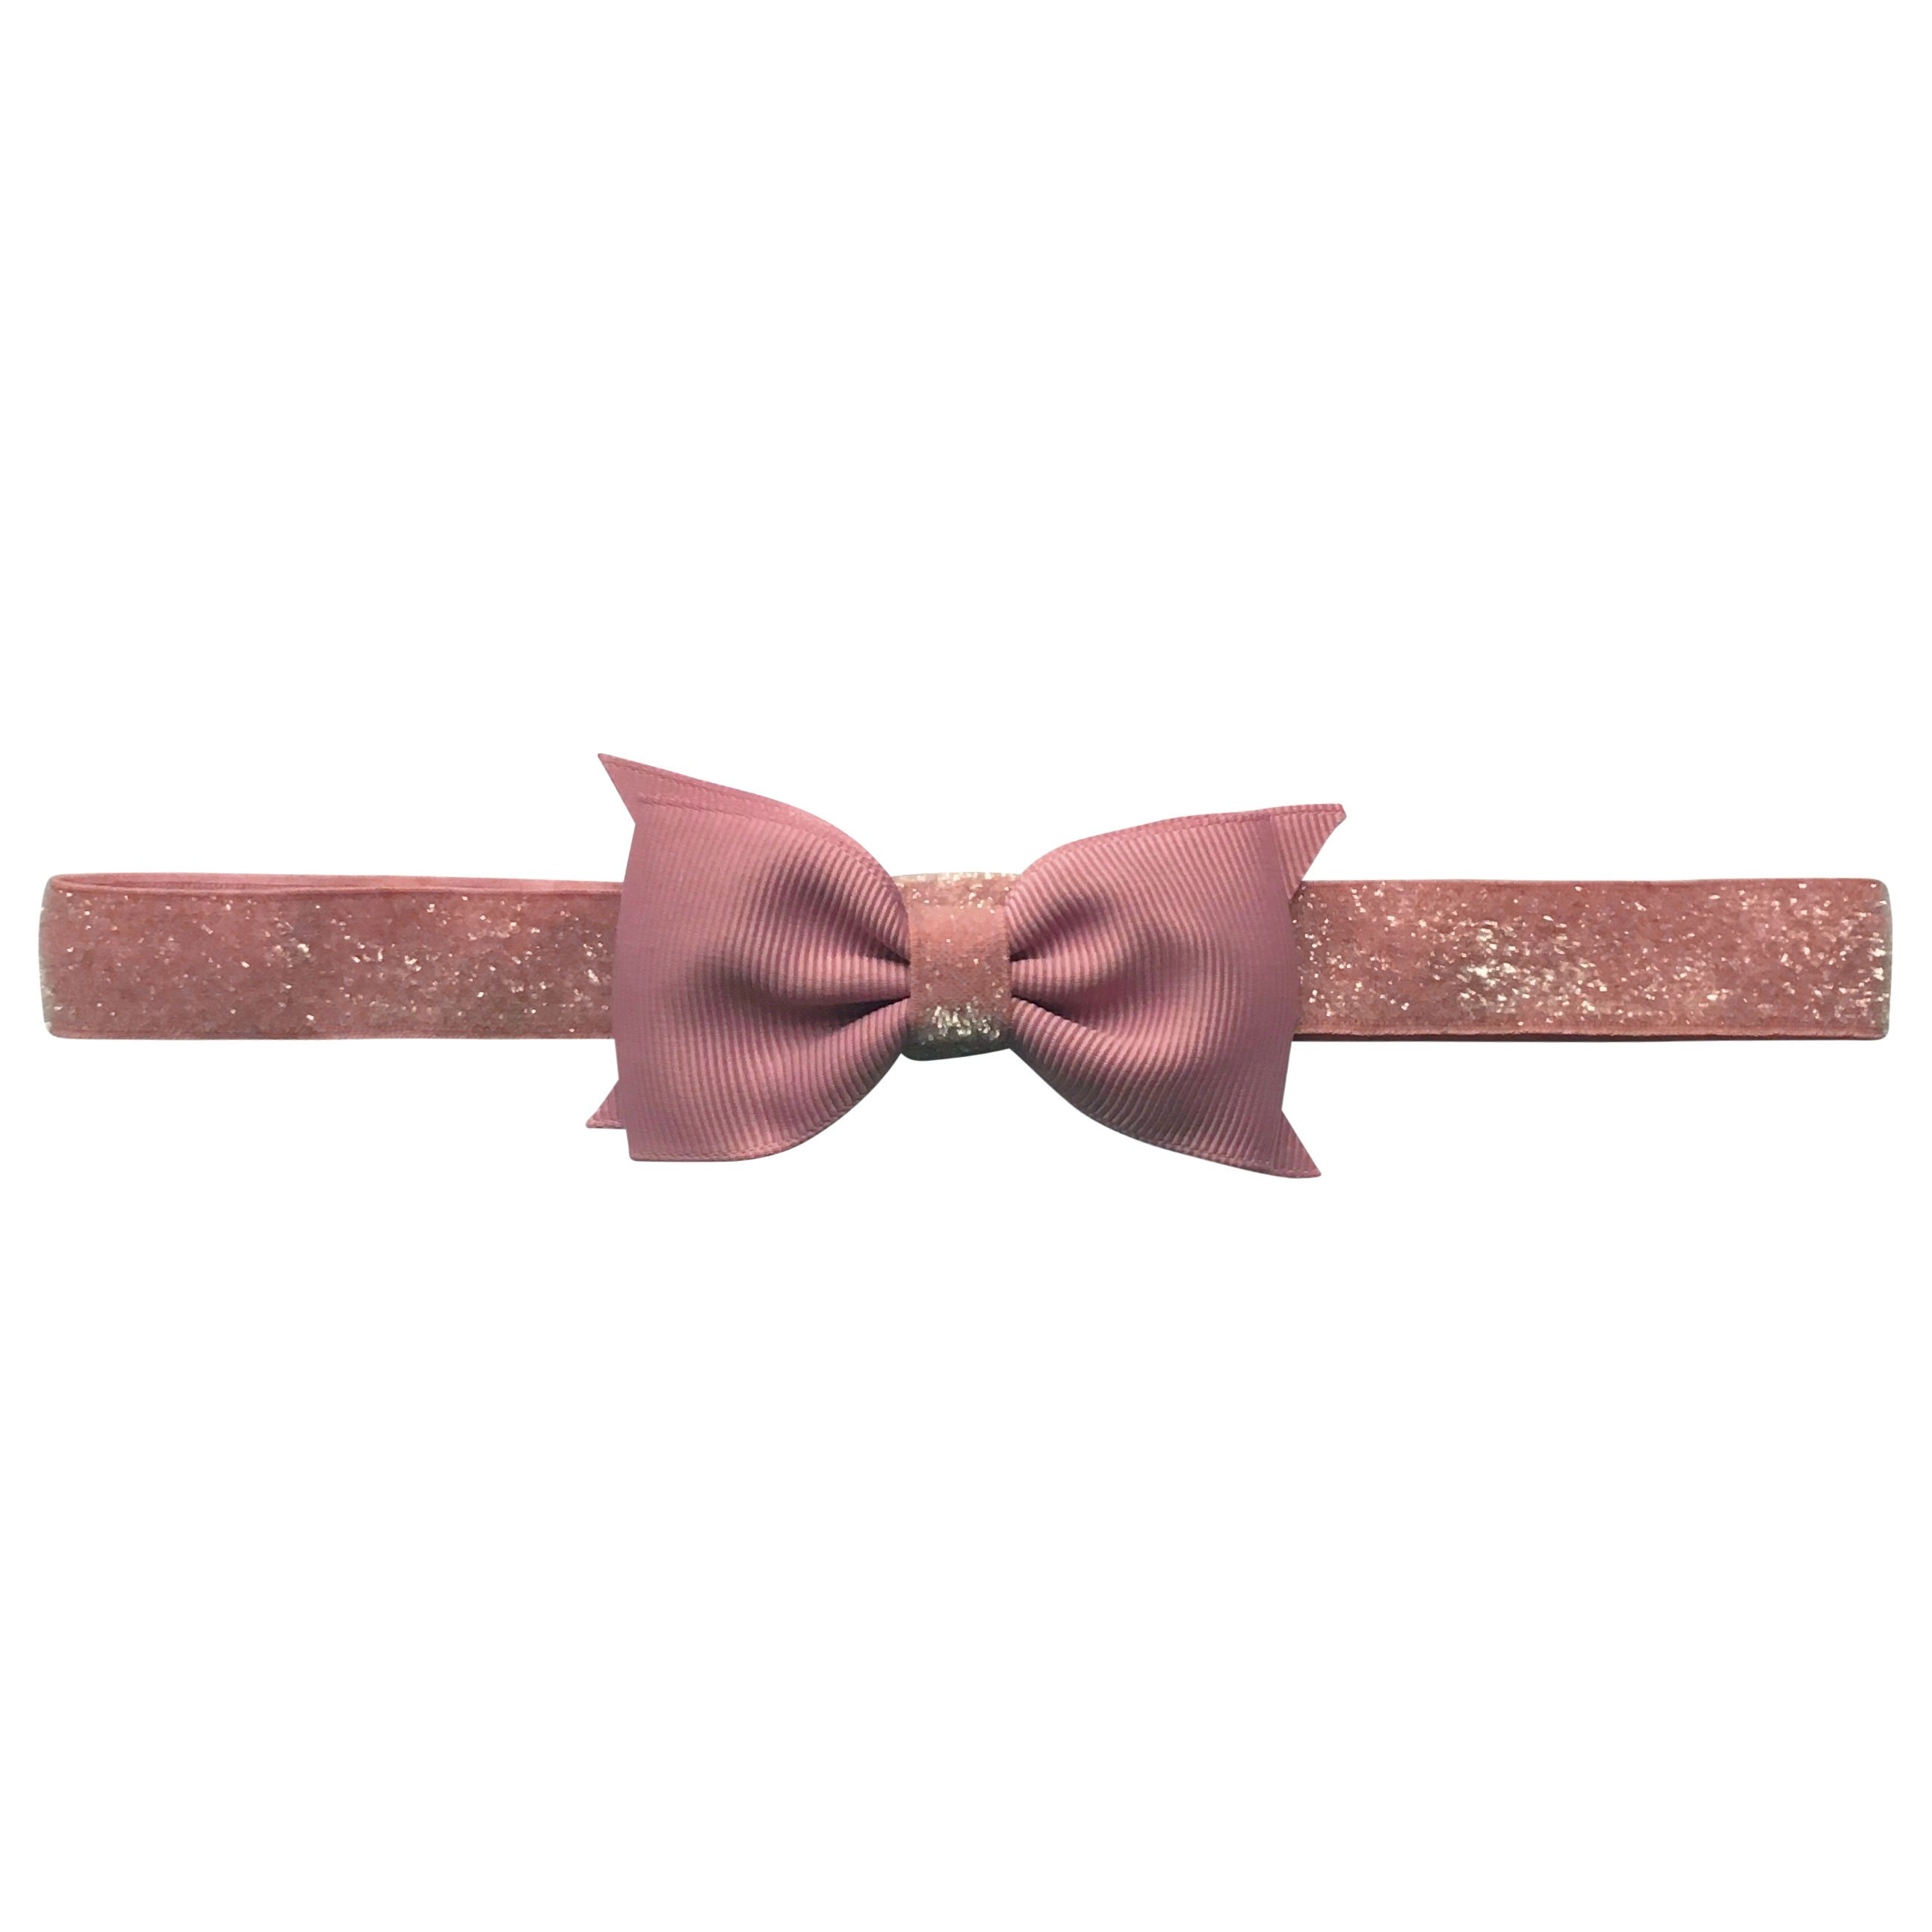 Image of   Double Bowtie Milledeux bow - elastic hairband - quartz colored glitter